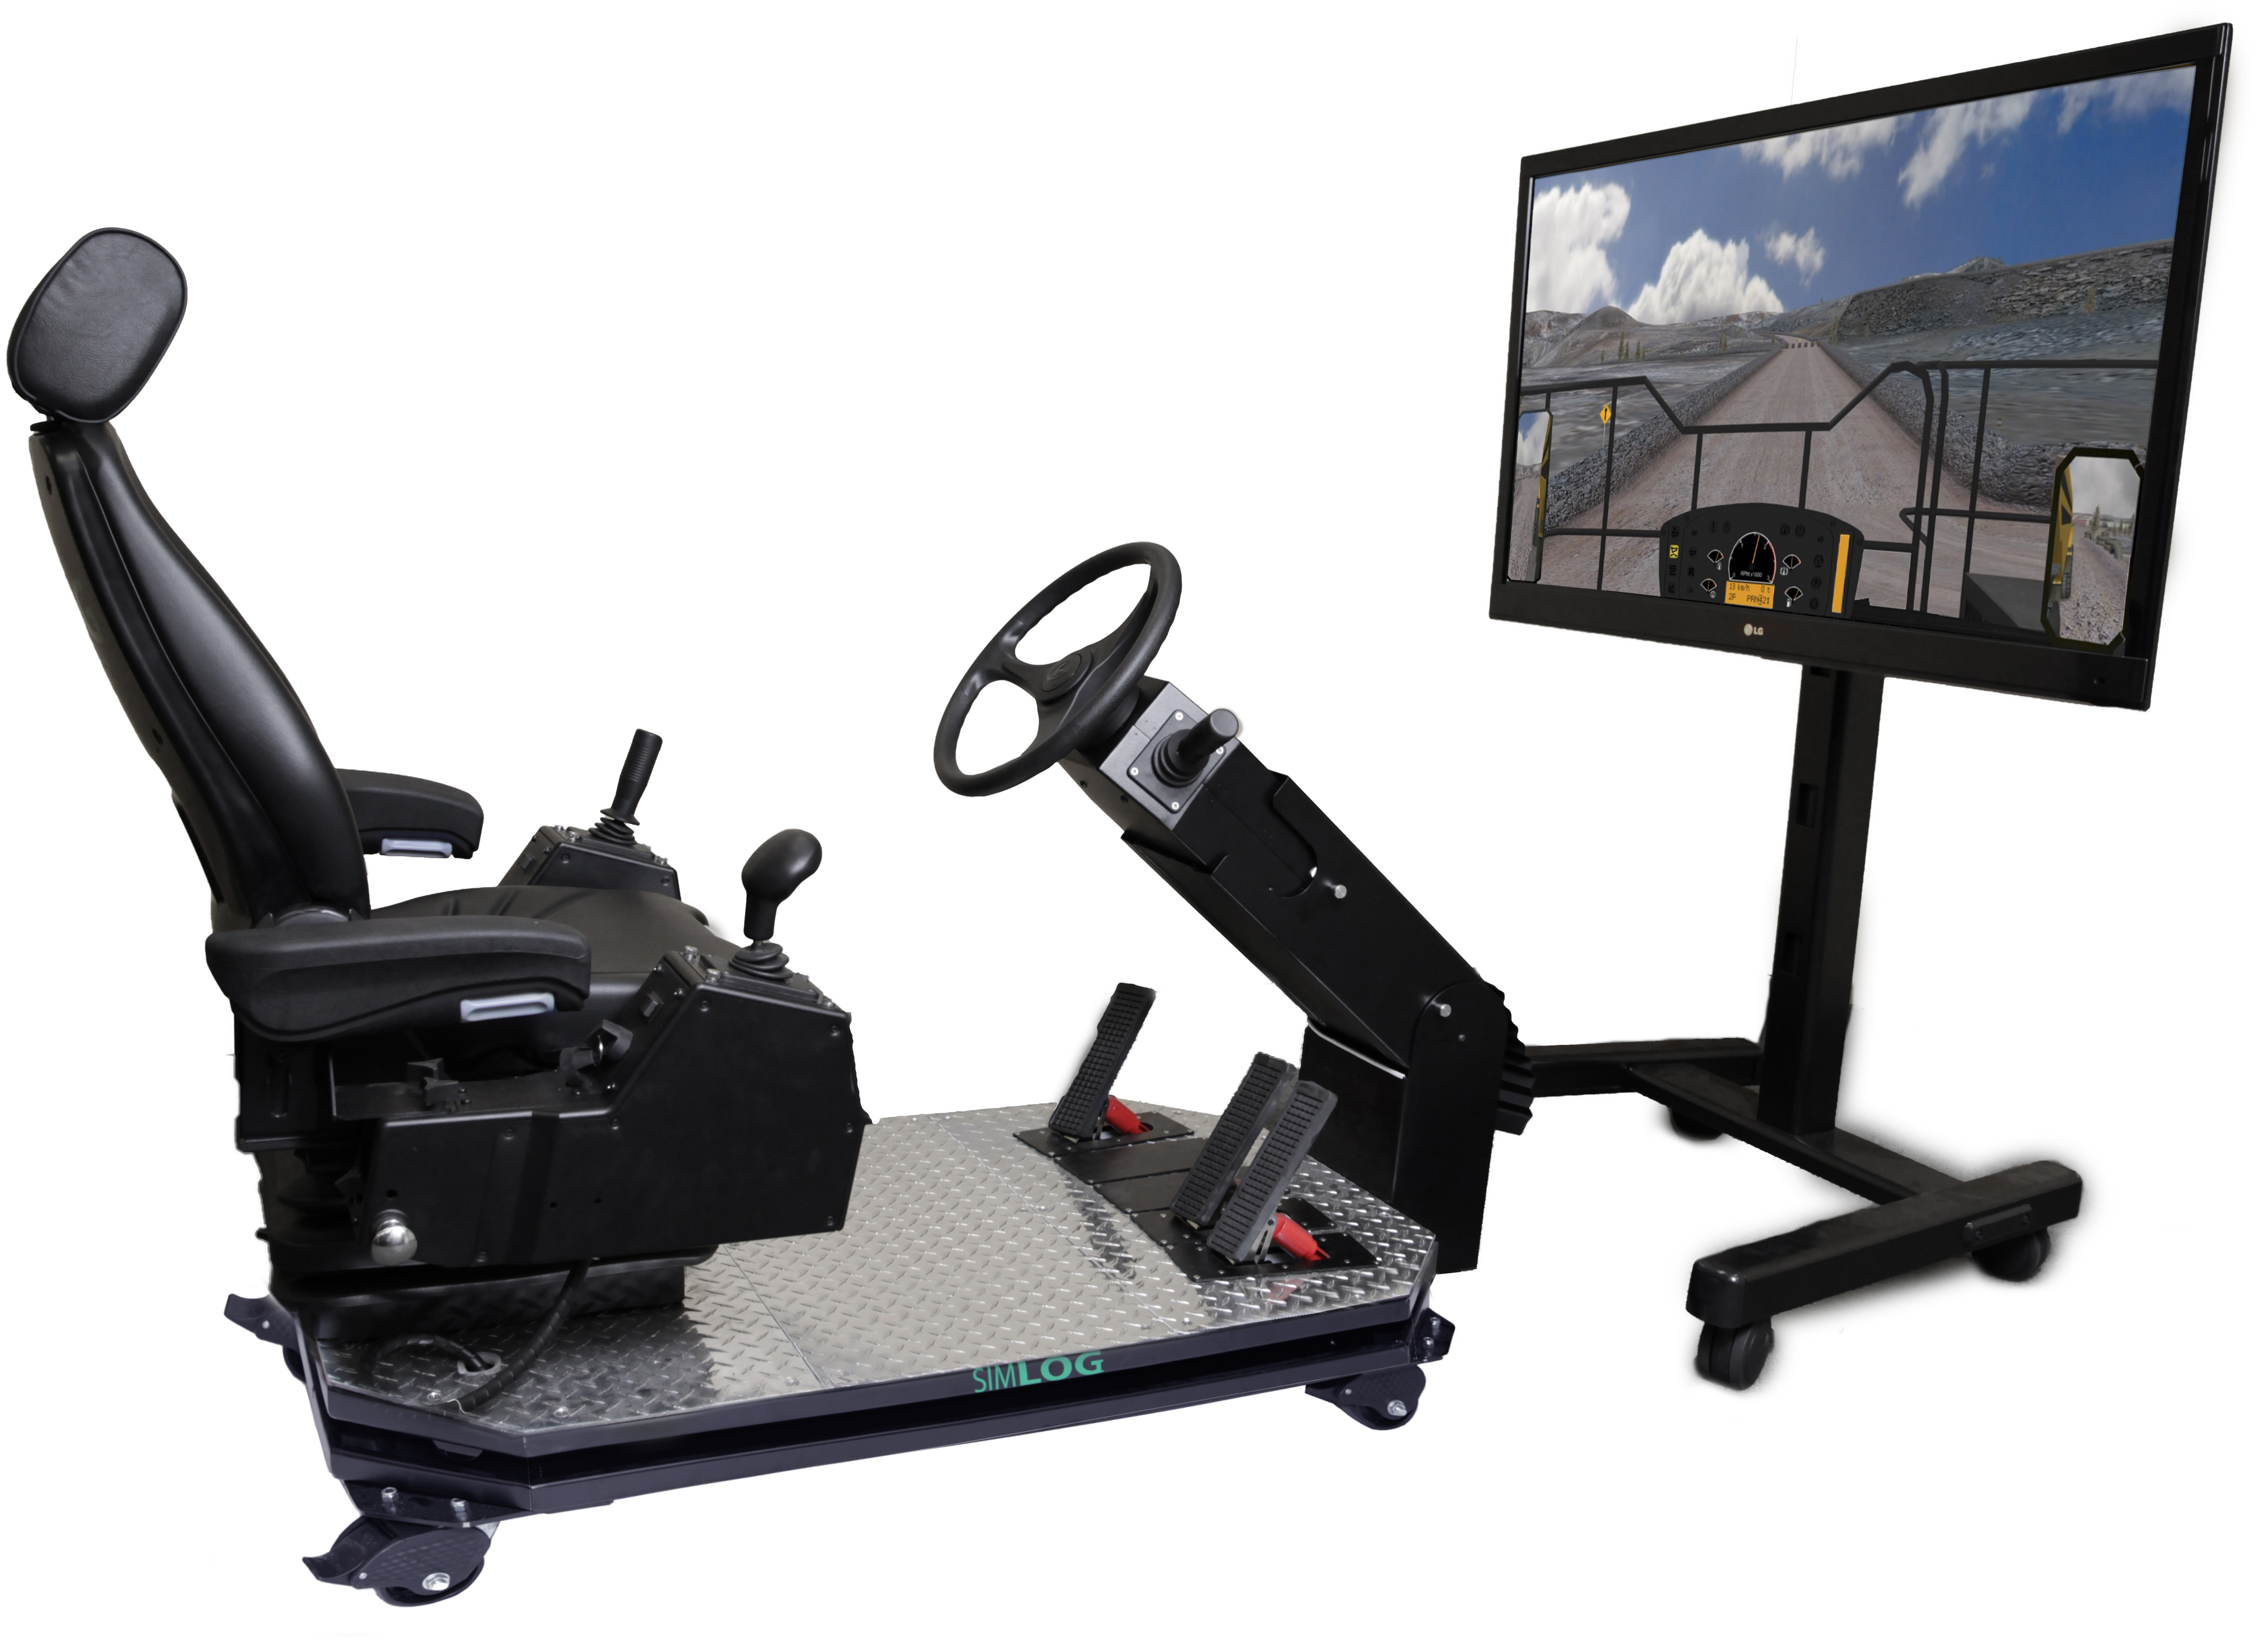 Off-Highway Truck Personal Simulator - Operator Chair - 1 Display